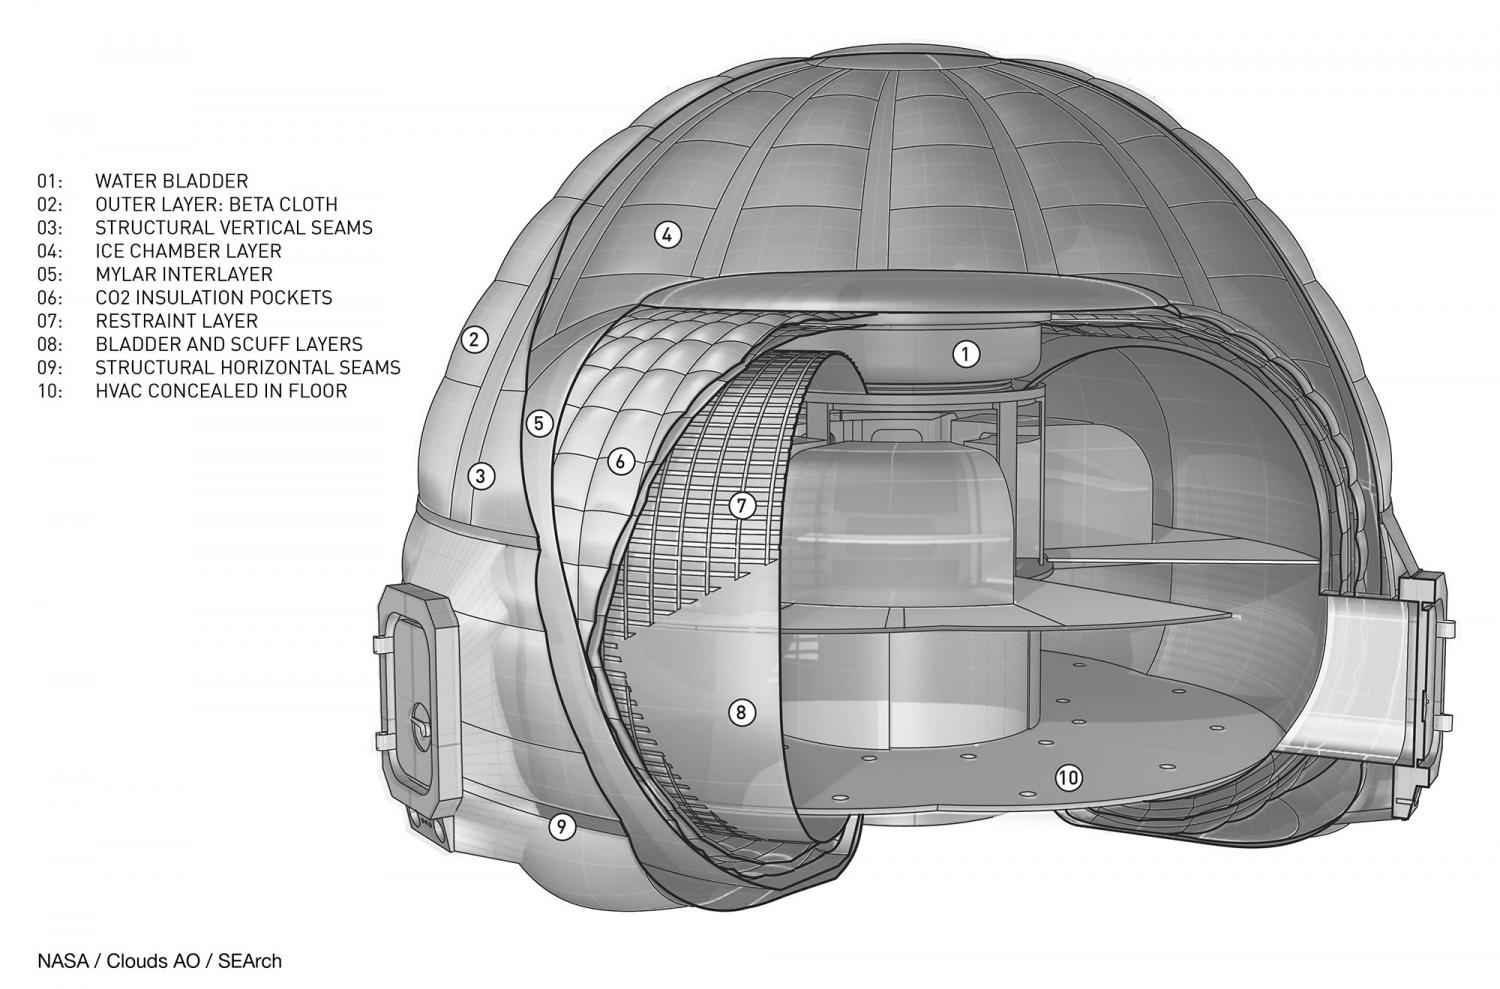 Nasa might build an ice house on mars - How to build a floor for a house concept ...